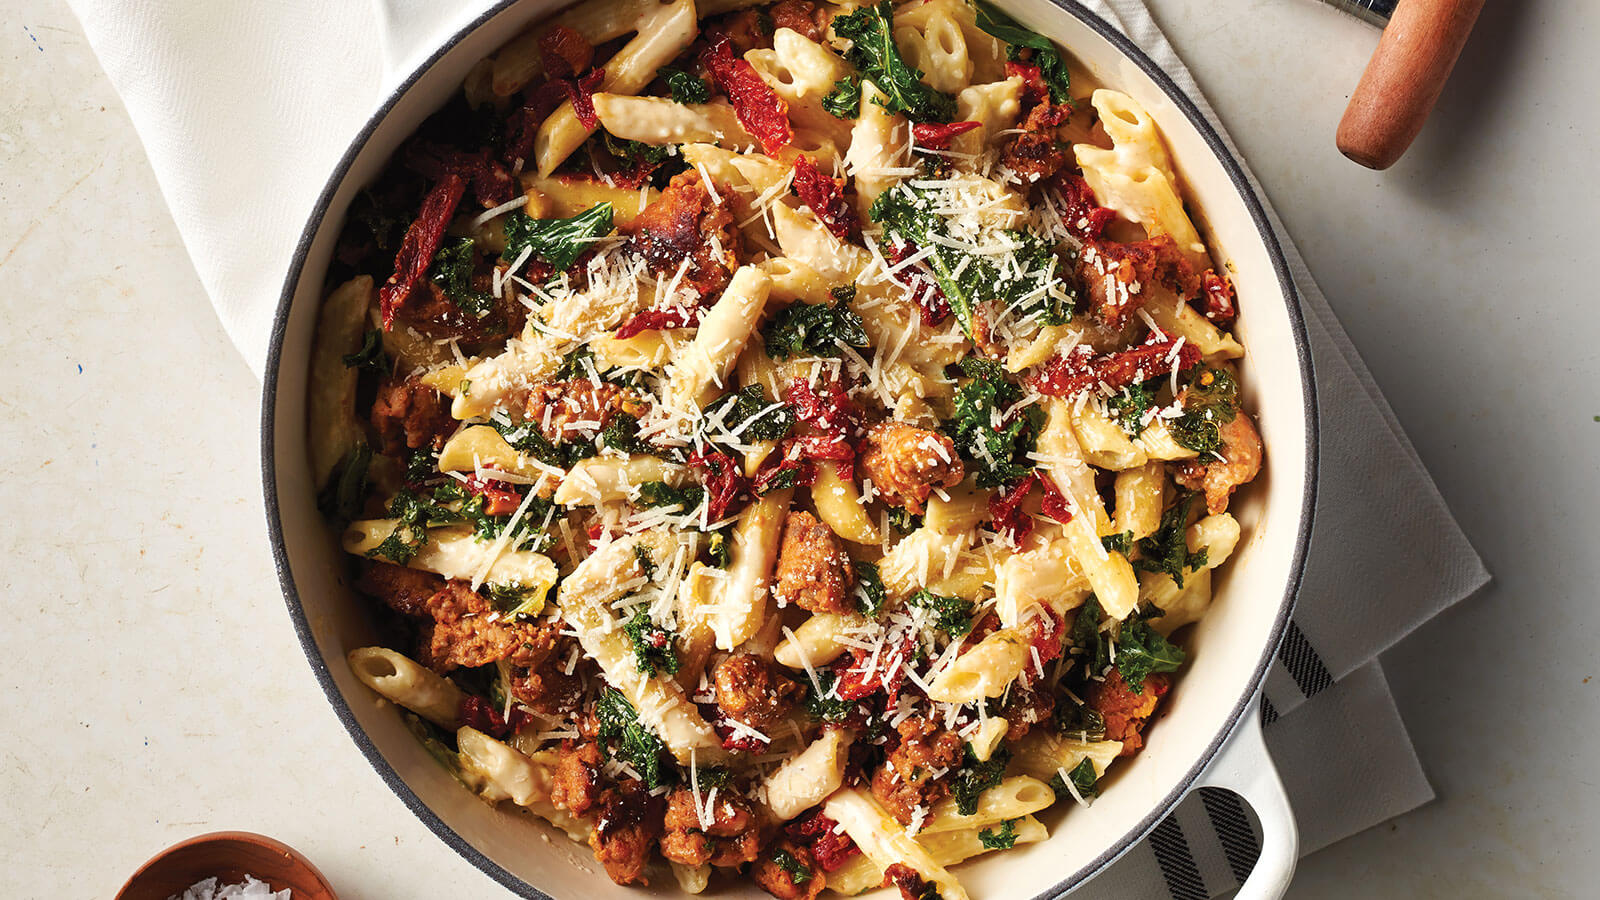 Creamy Kale and Sausage Penne